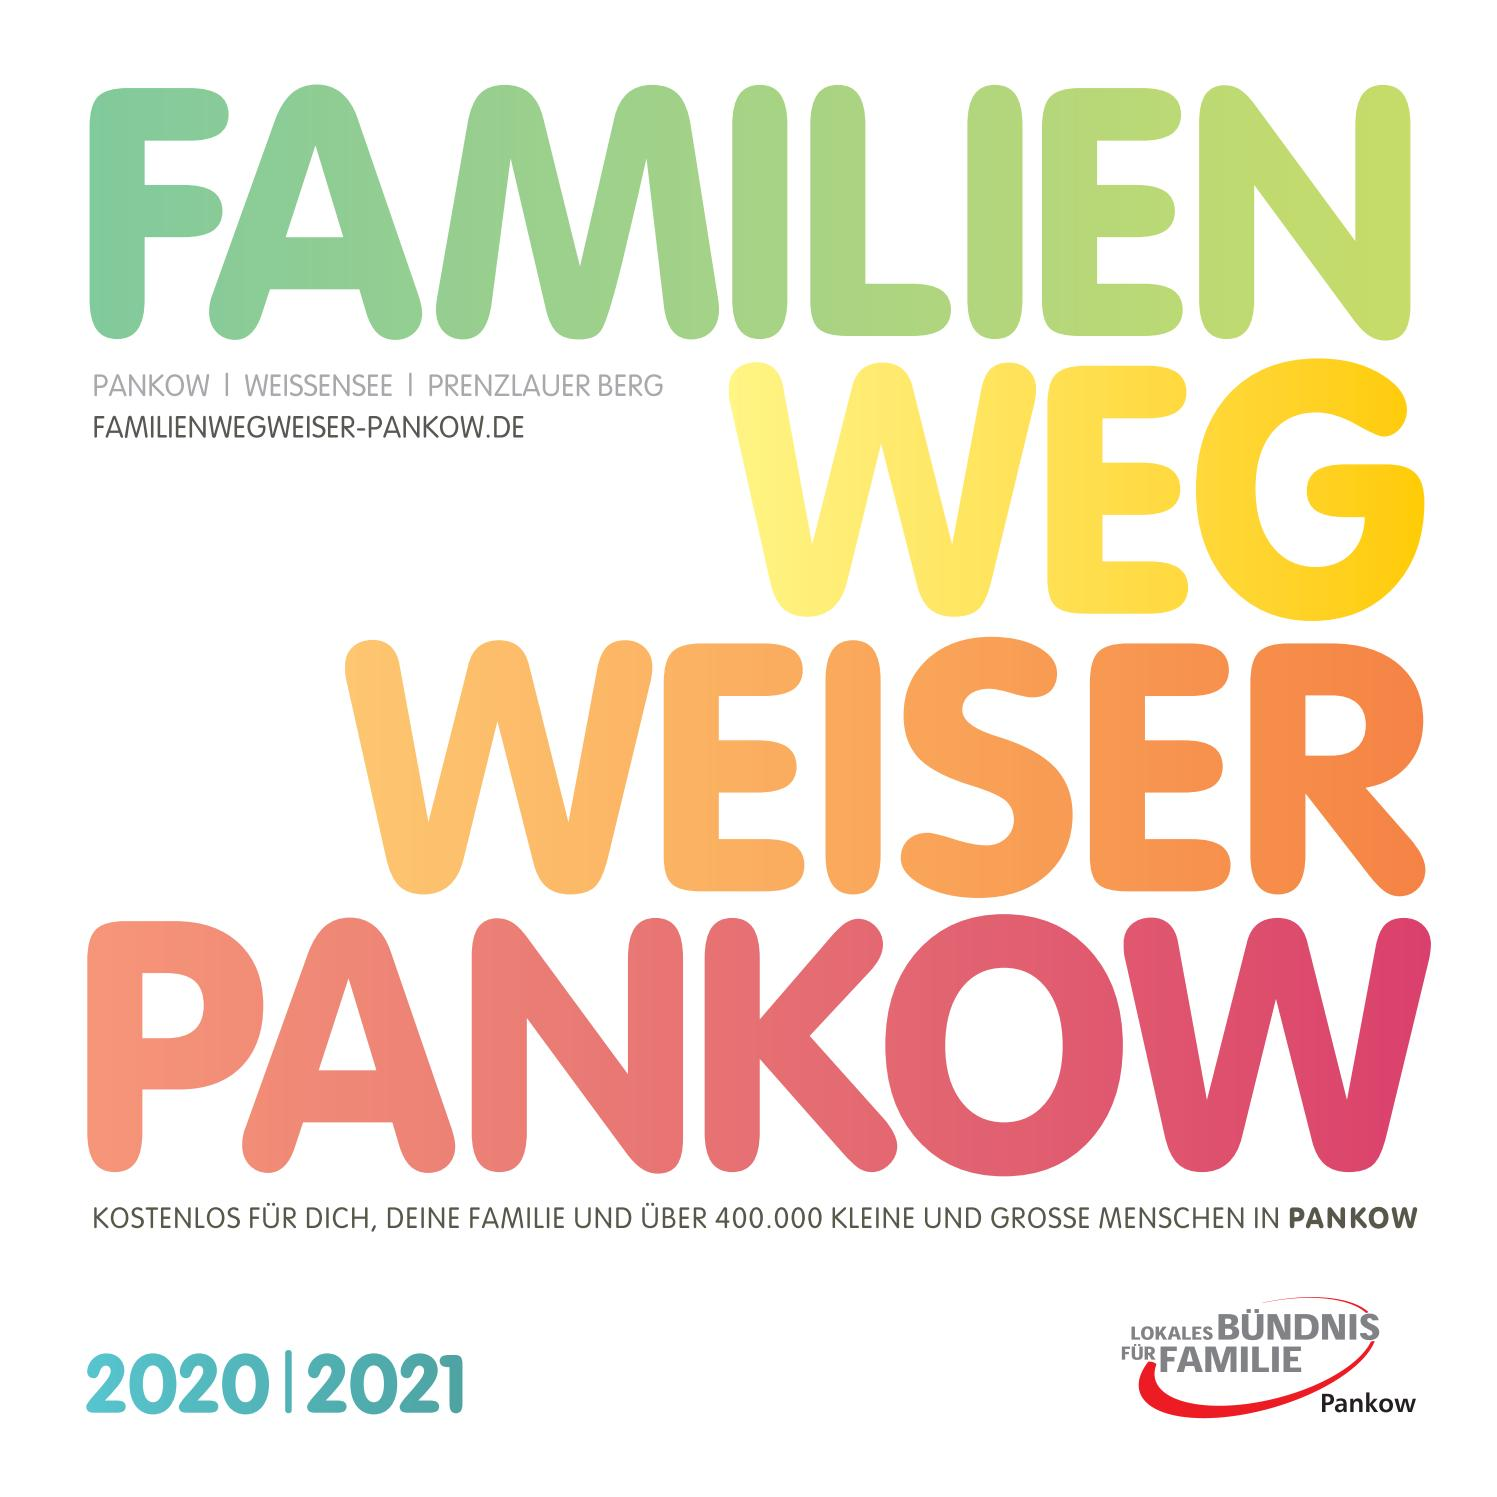 Familienwegweiser Pankow 2020 2021 By In Touch Berlin Lokalmarketing Issuu